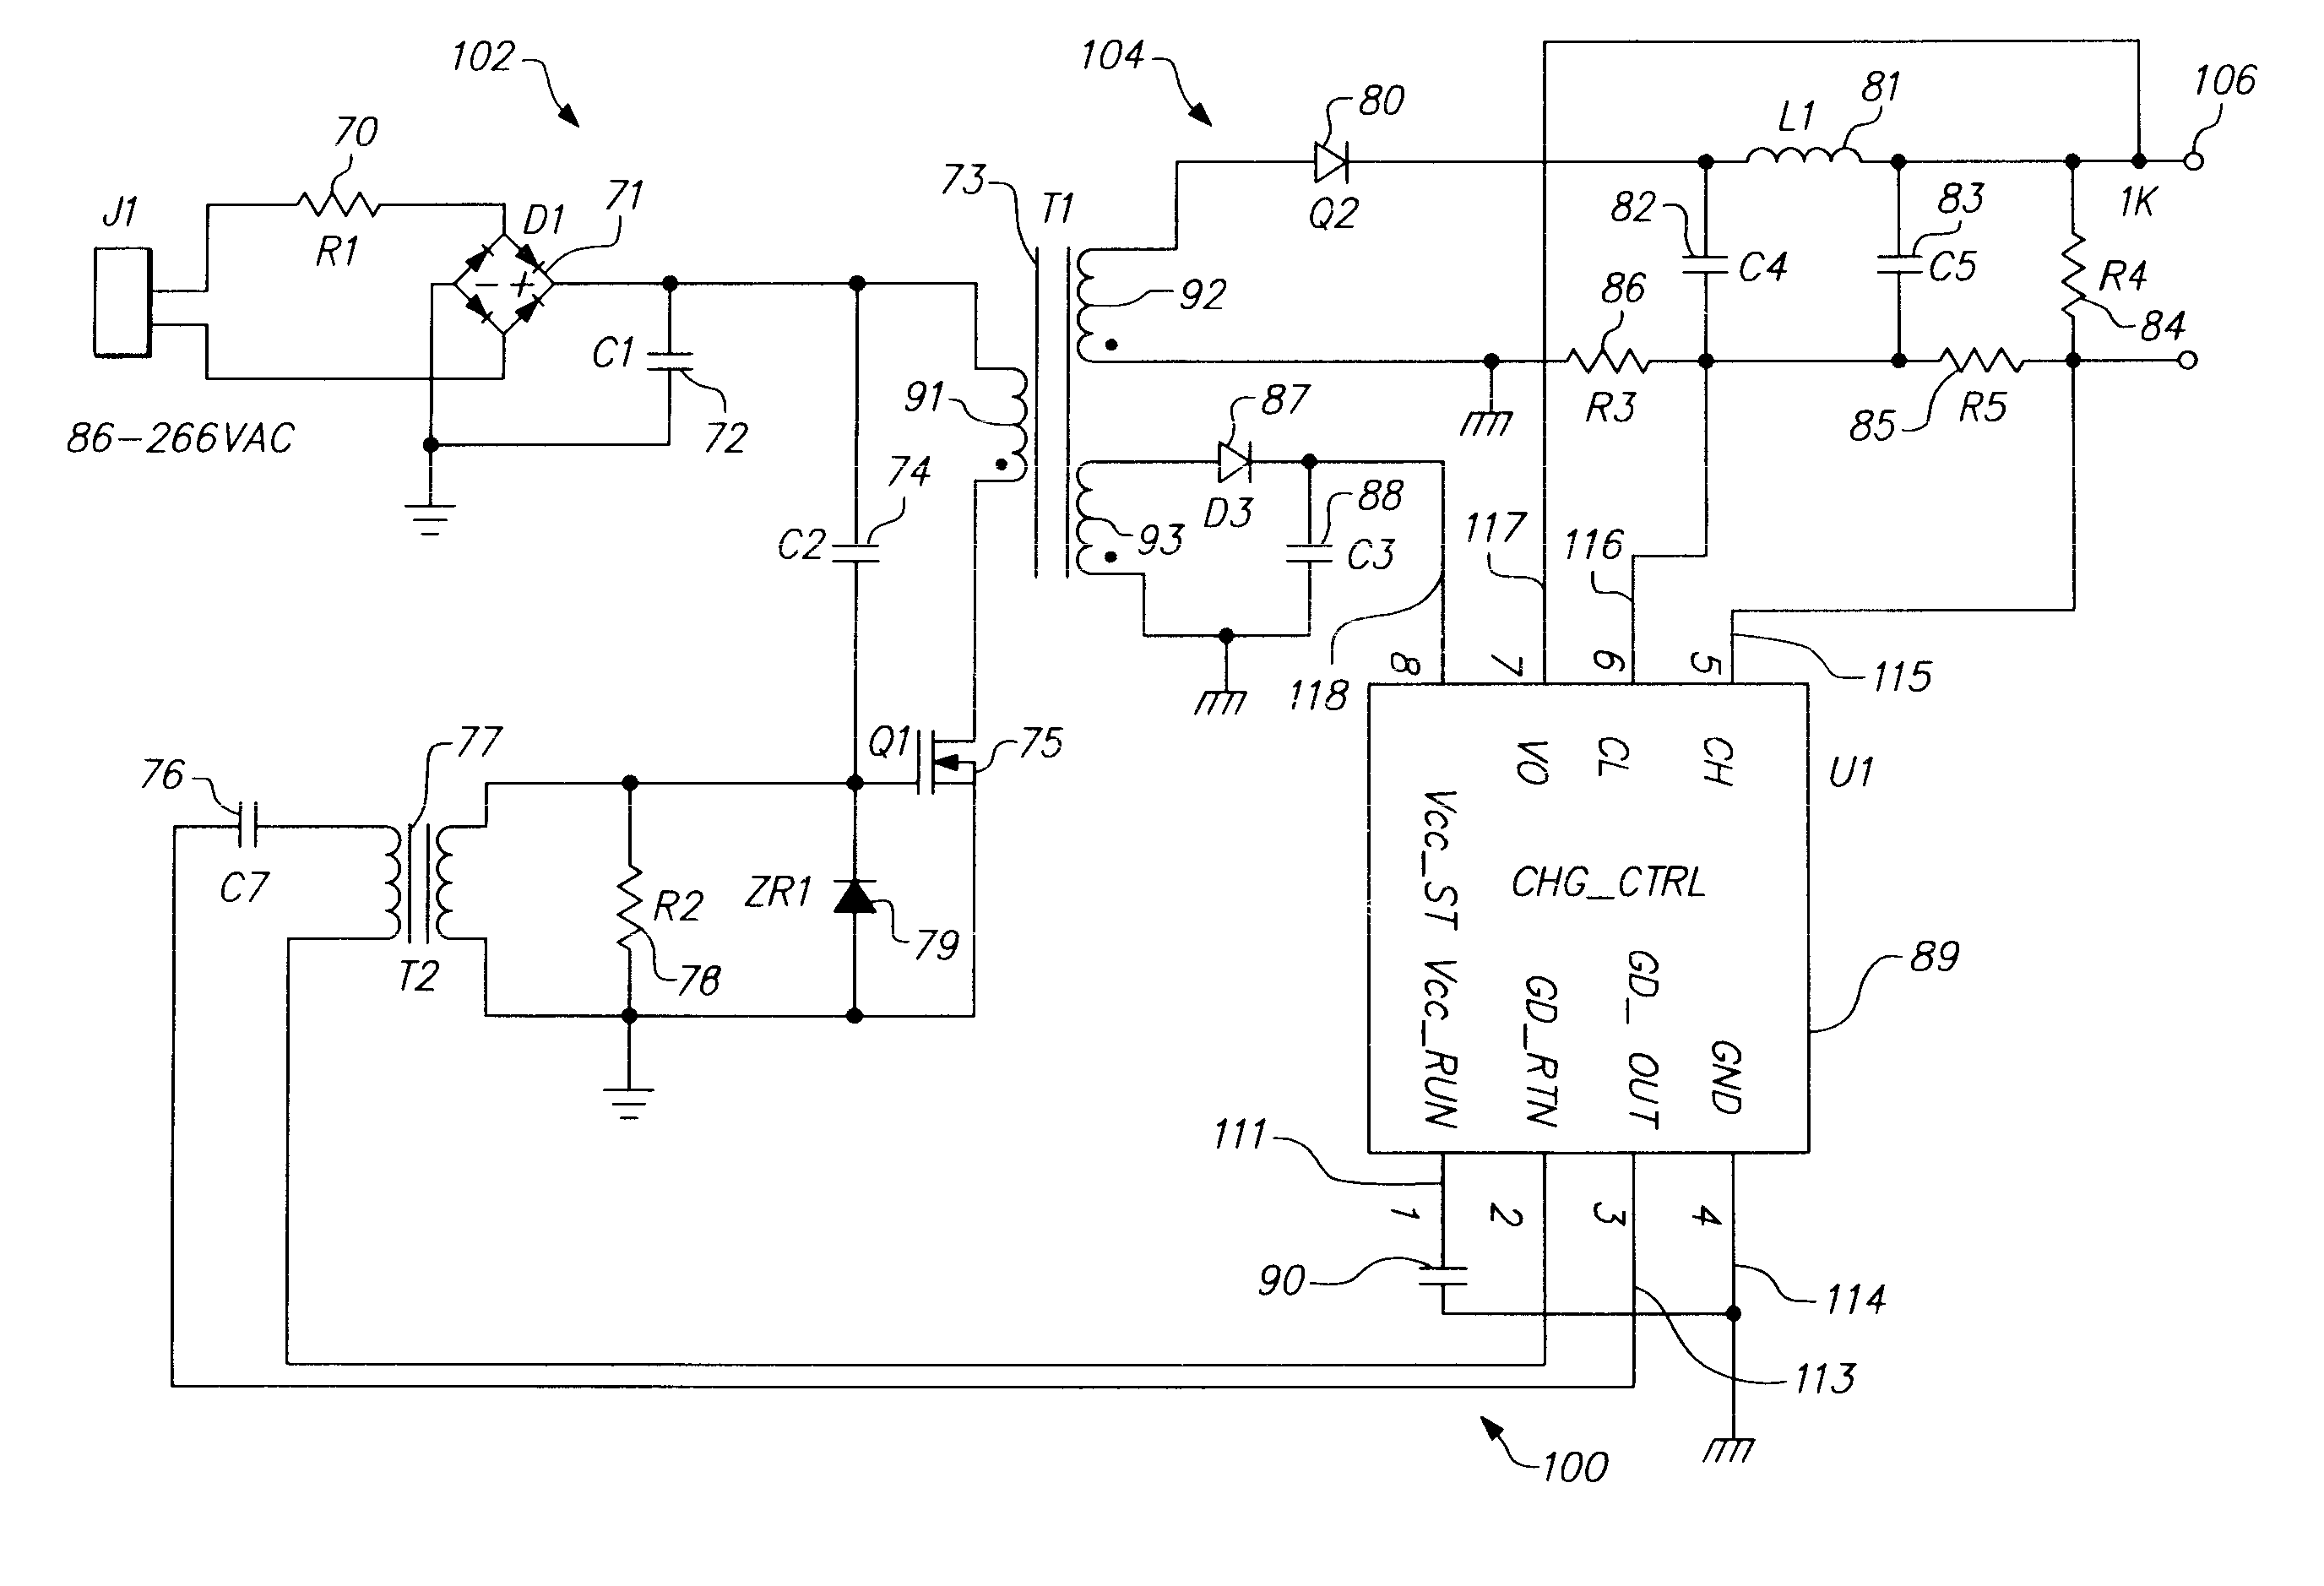 Hv4 also SIM card interface block diagram additionally Ac Filter Capacitors For  m Inverter together with How Mag rons Work further How To  lify The Signal Of A Tcrt5000 Phototransistor. on energy circuit diagram